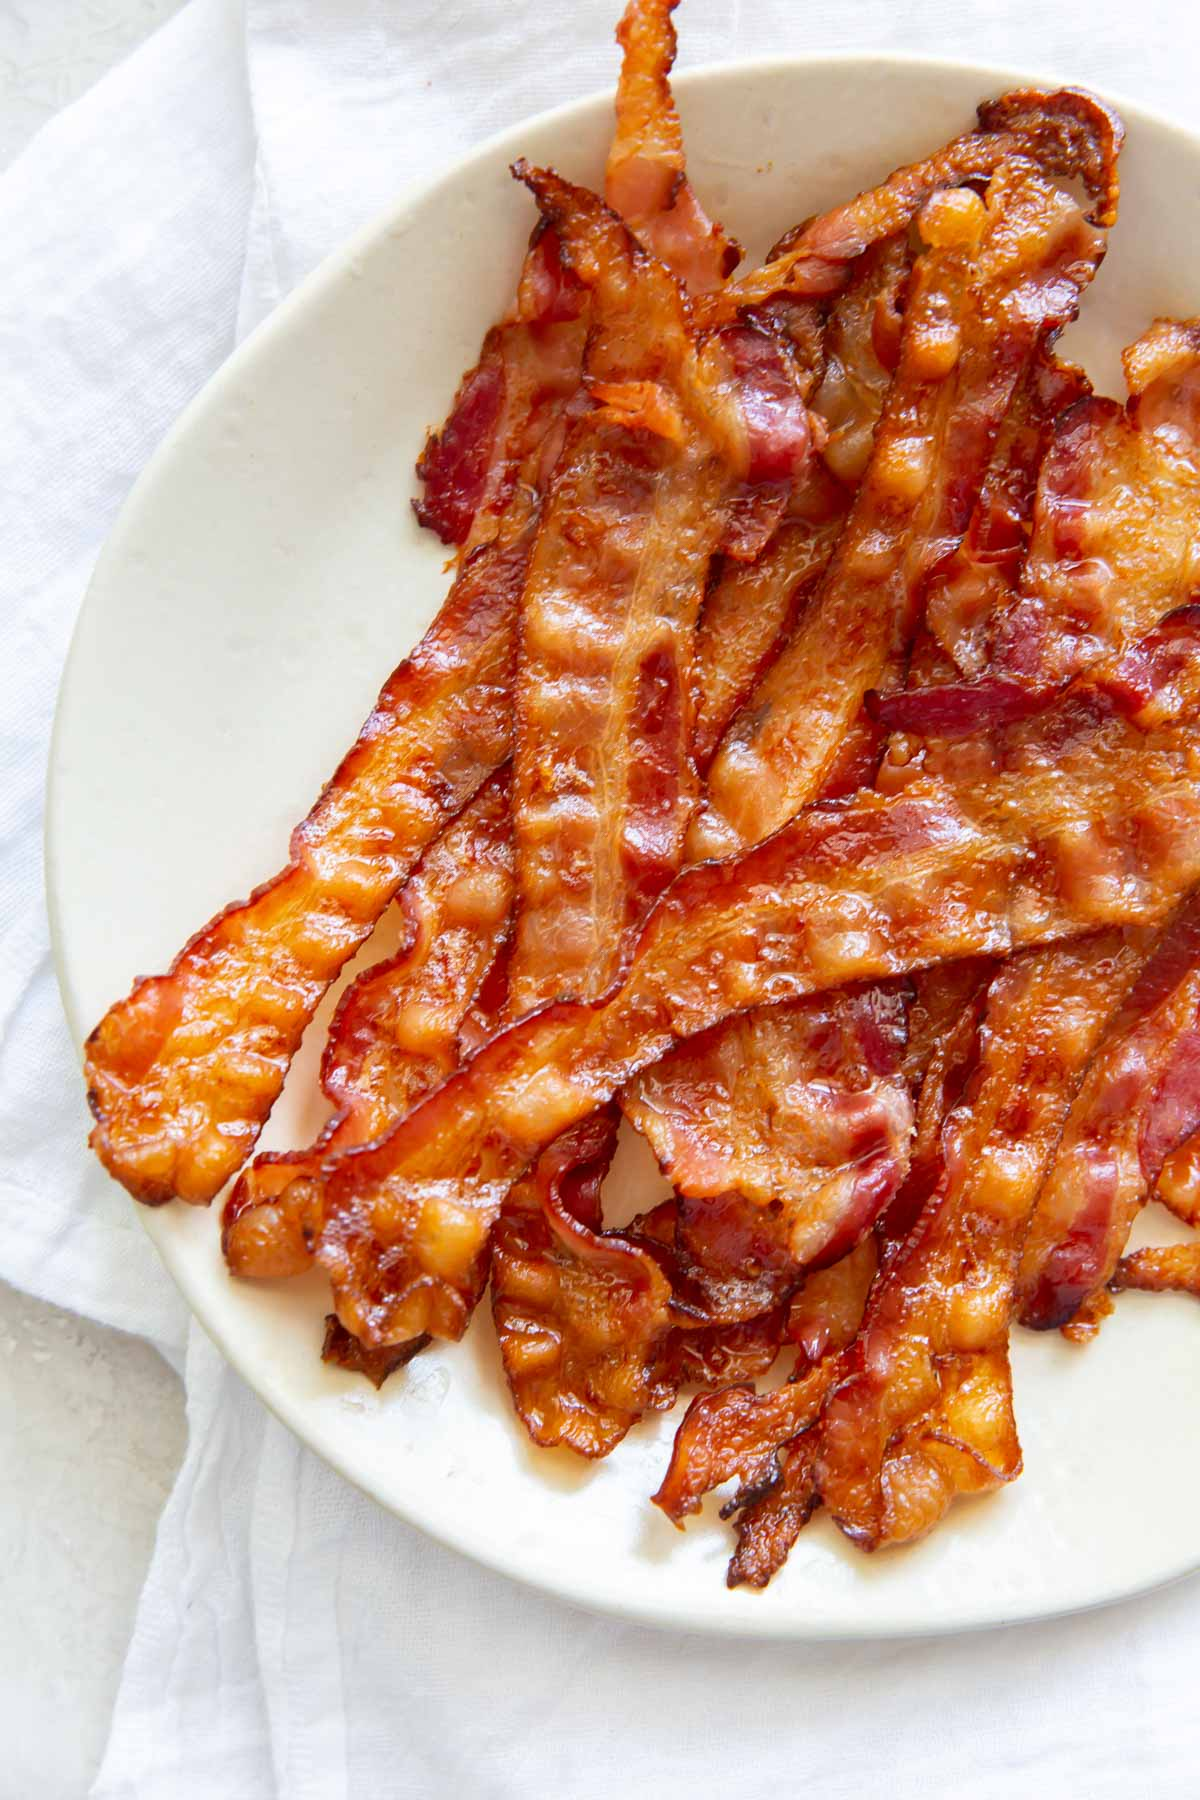 baked bacon slices stacked on a plate